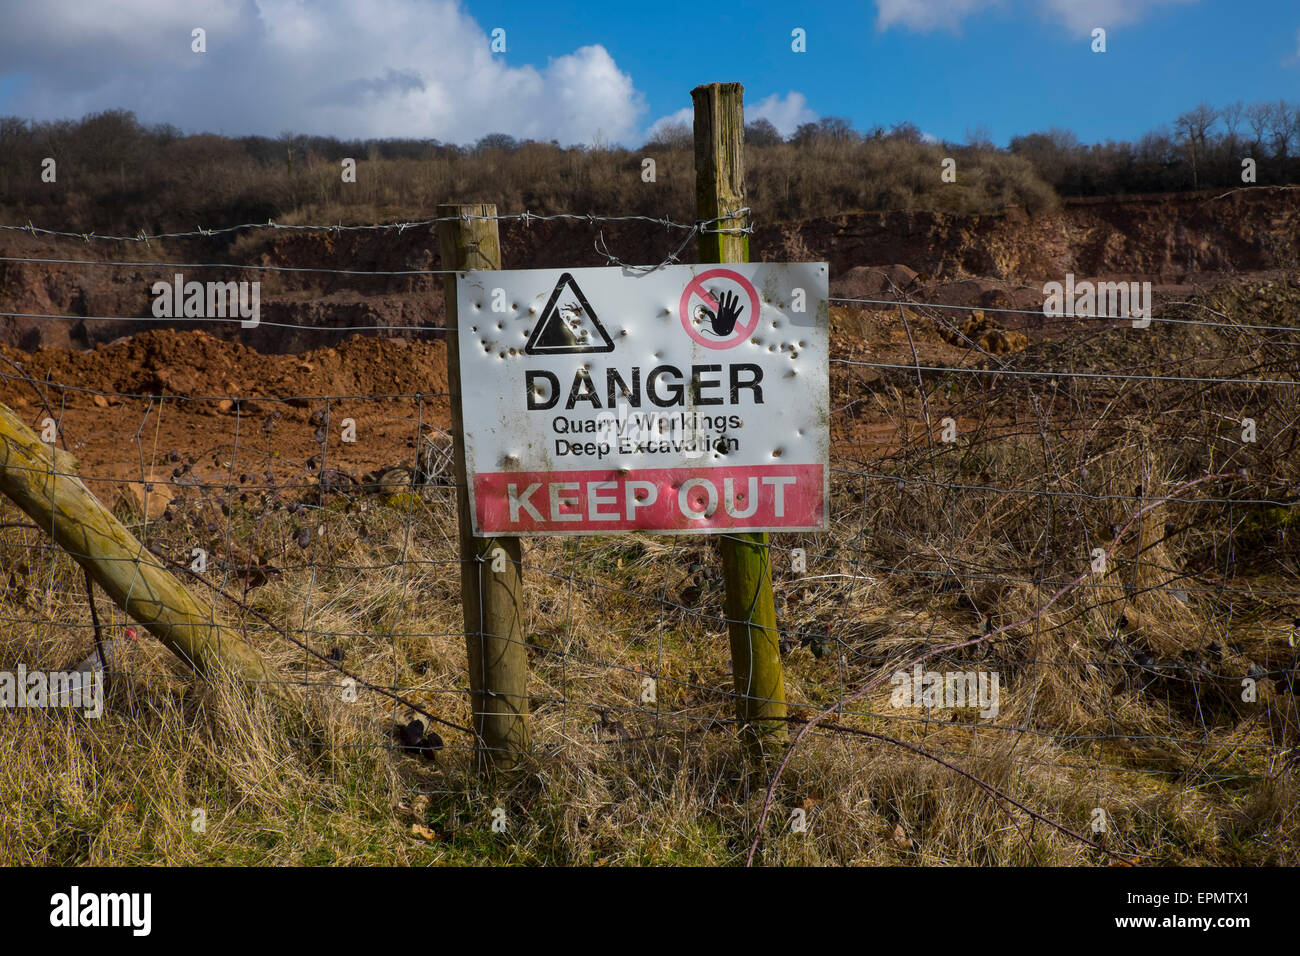 Danger keep out sign on fence surrounding quarry, Pentyrch, South Glamorgan, Cardiff, Wales, UK - Stock Image